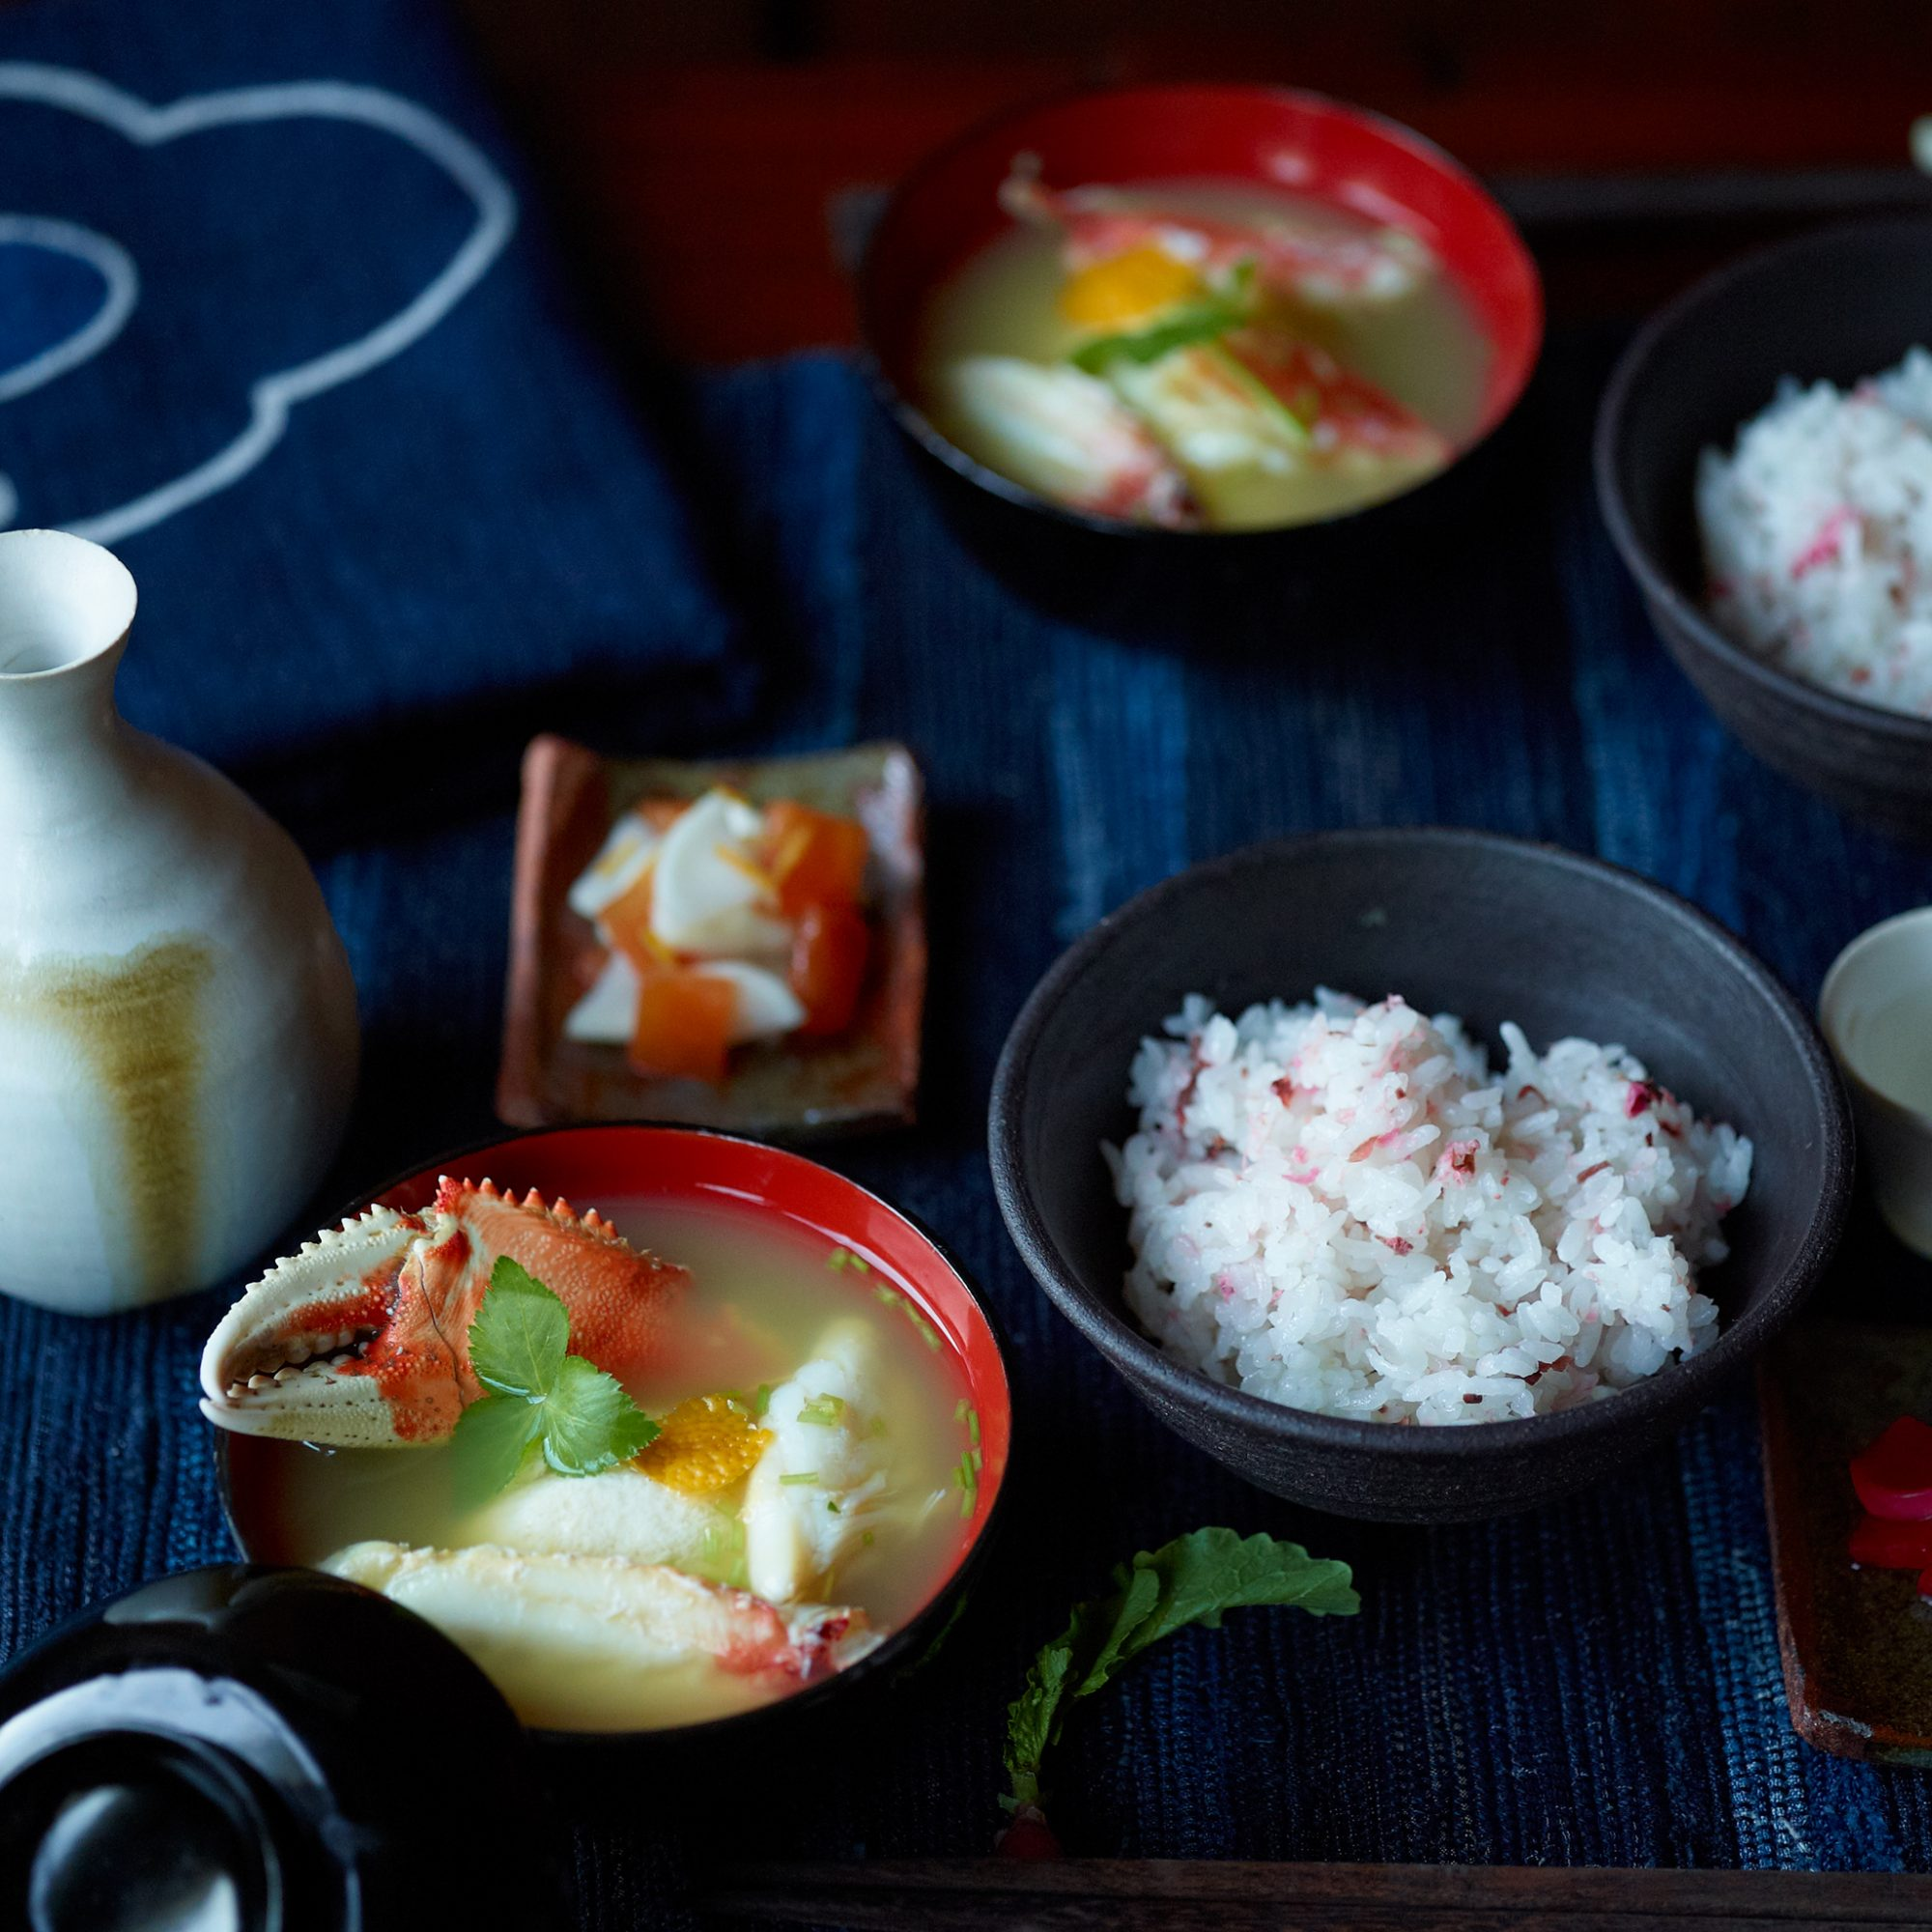 images-sys-201203-r-dashi-with-crab-and-tofu.jpg